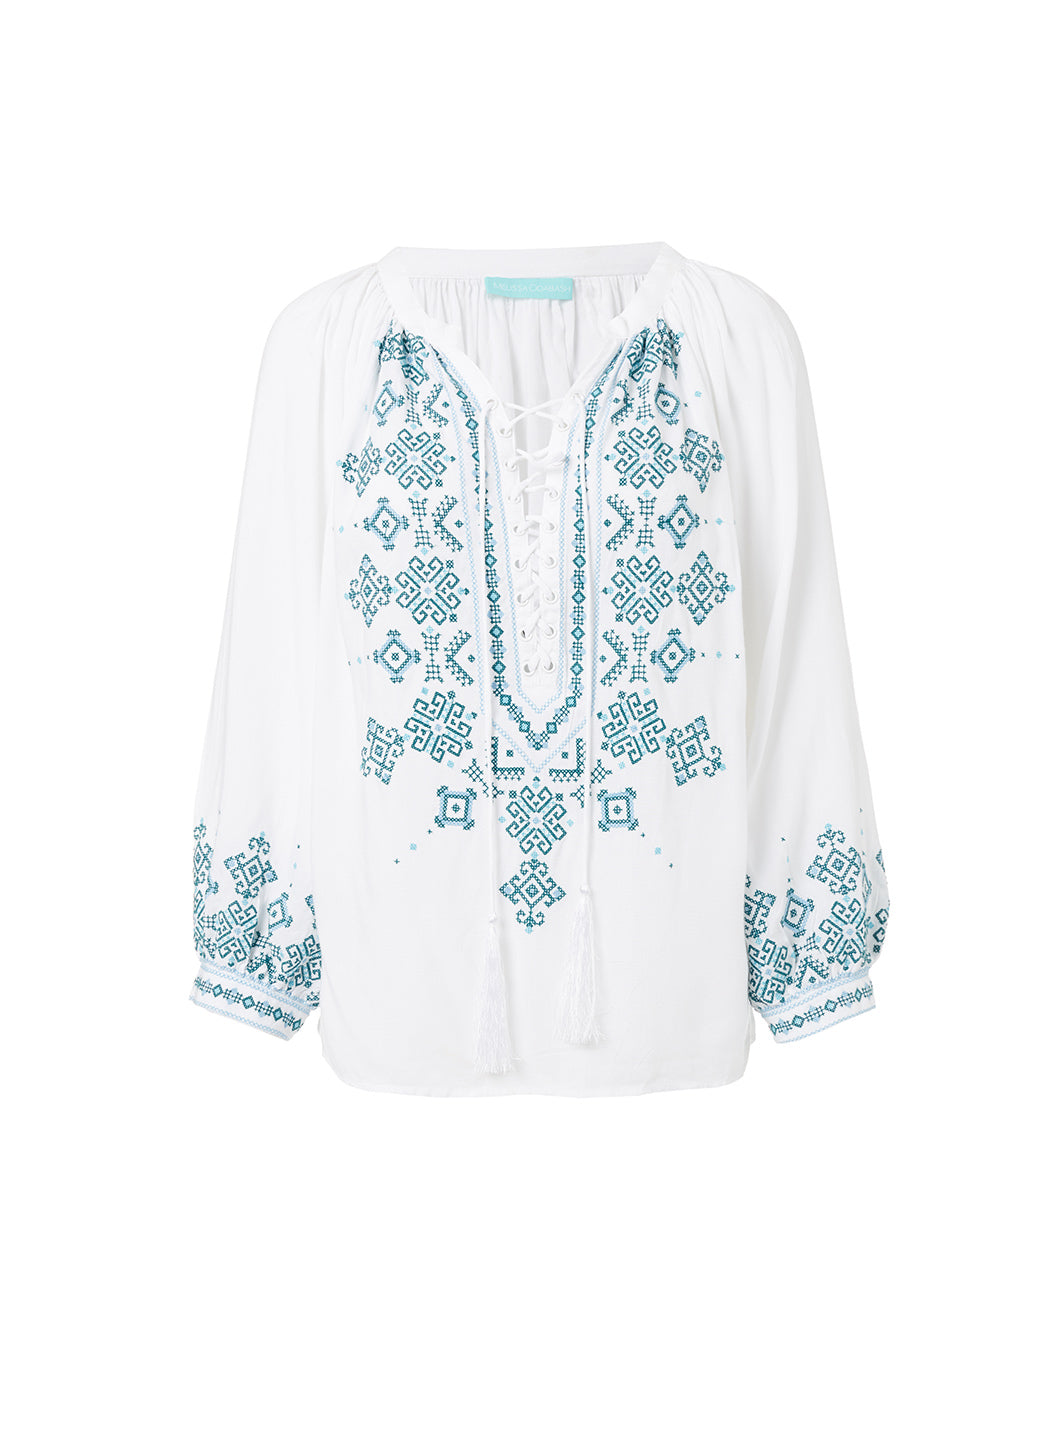 shiv-whitemint-laceup-embroidered-blouse-OS - Melissa Odabash Tops & Bottoms